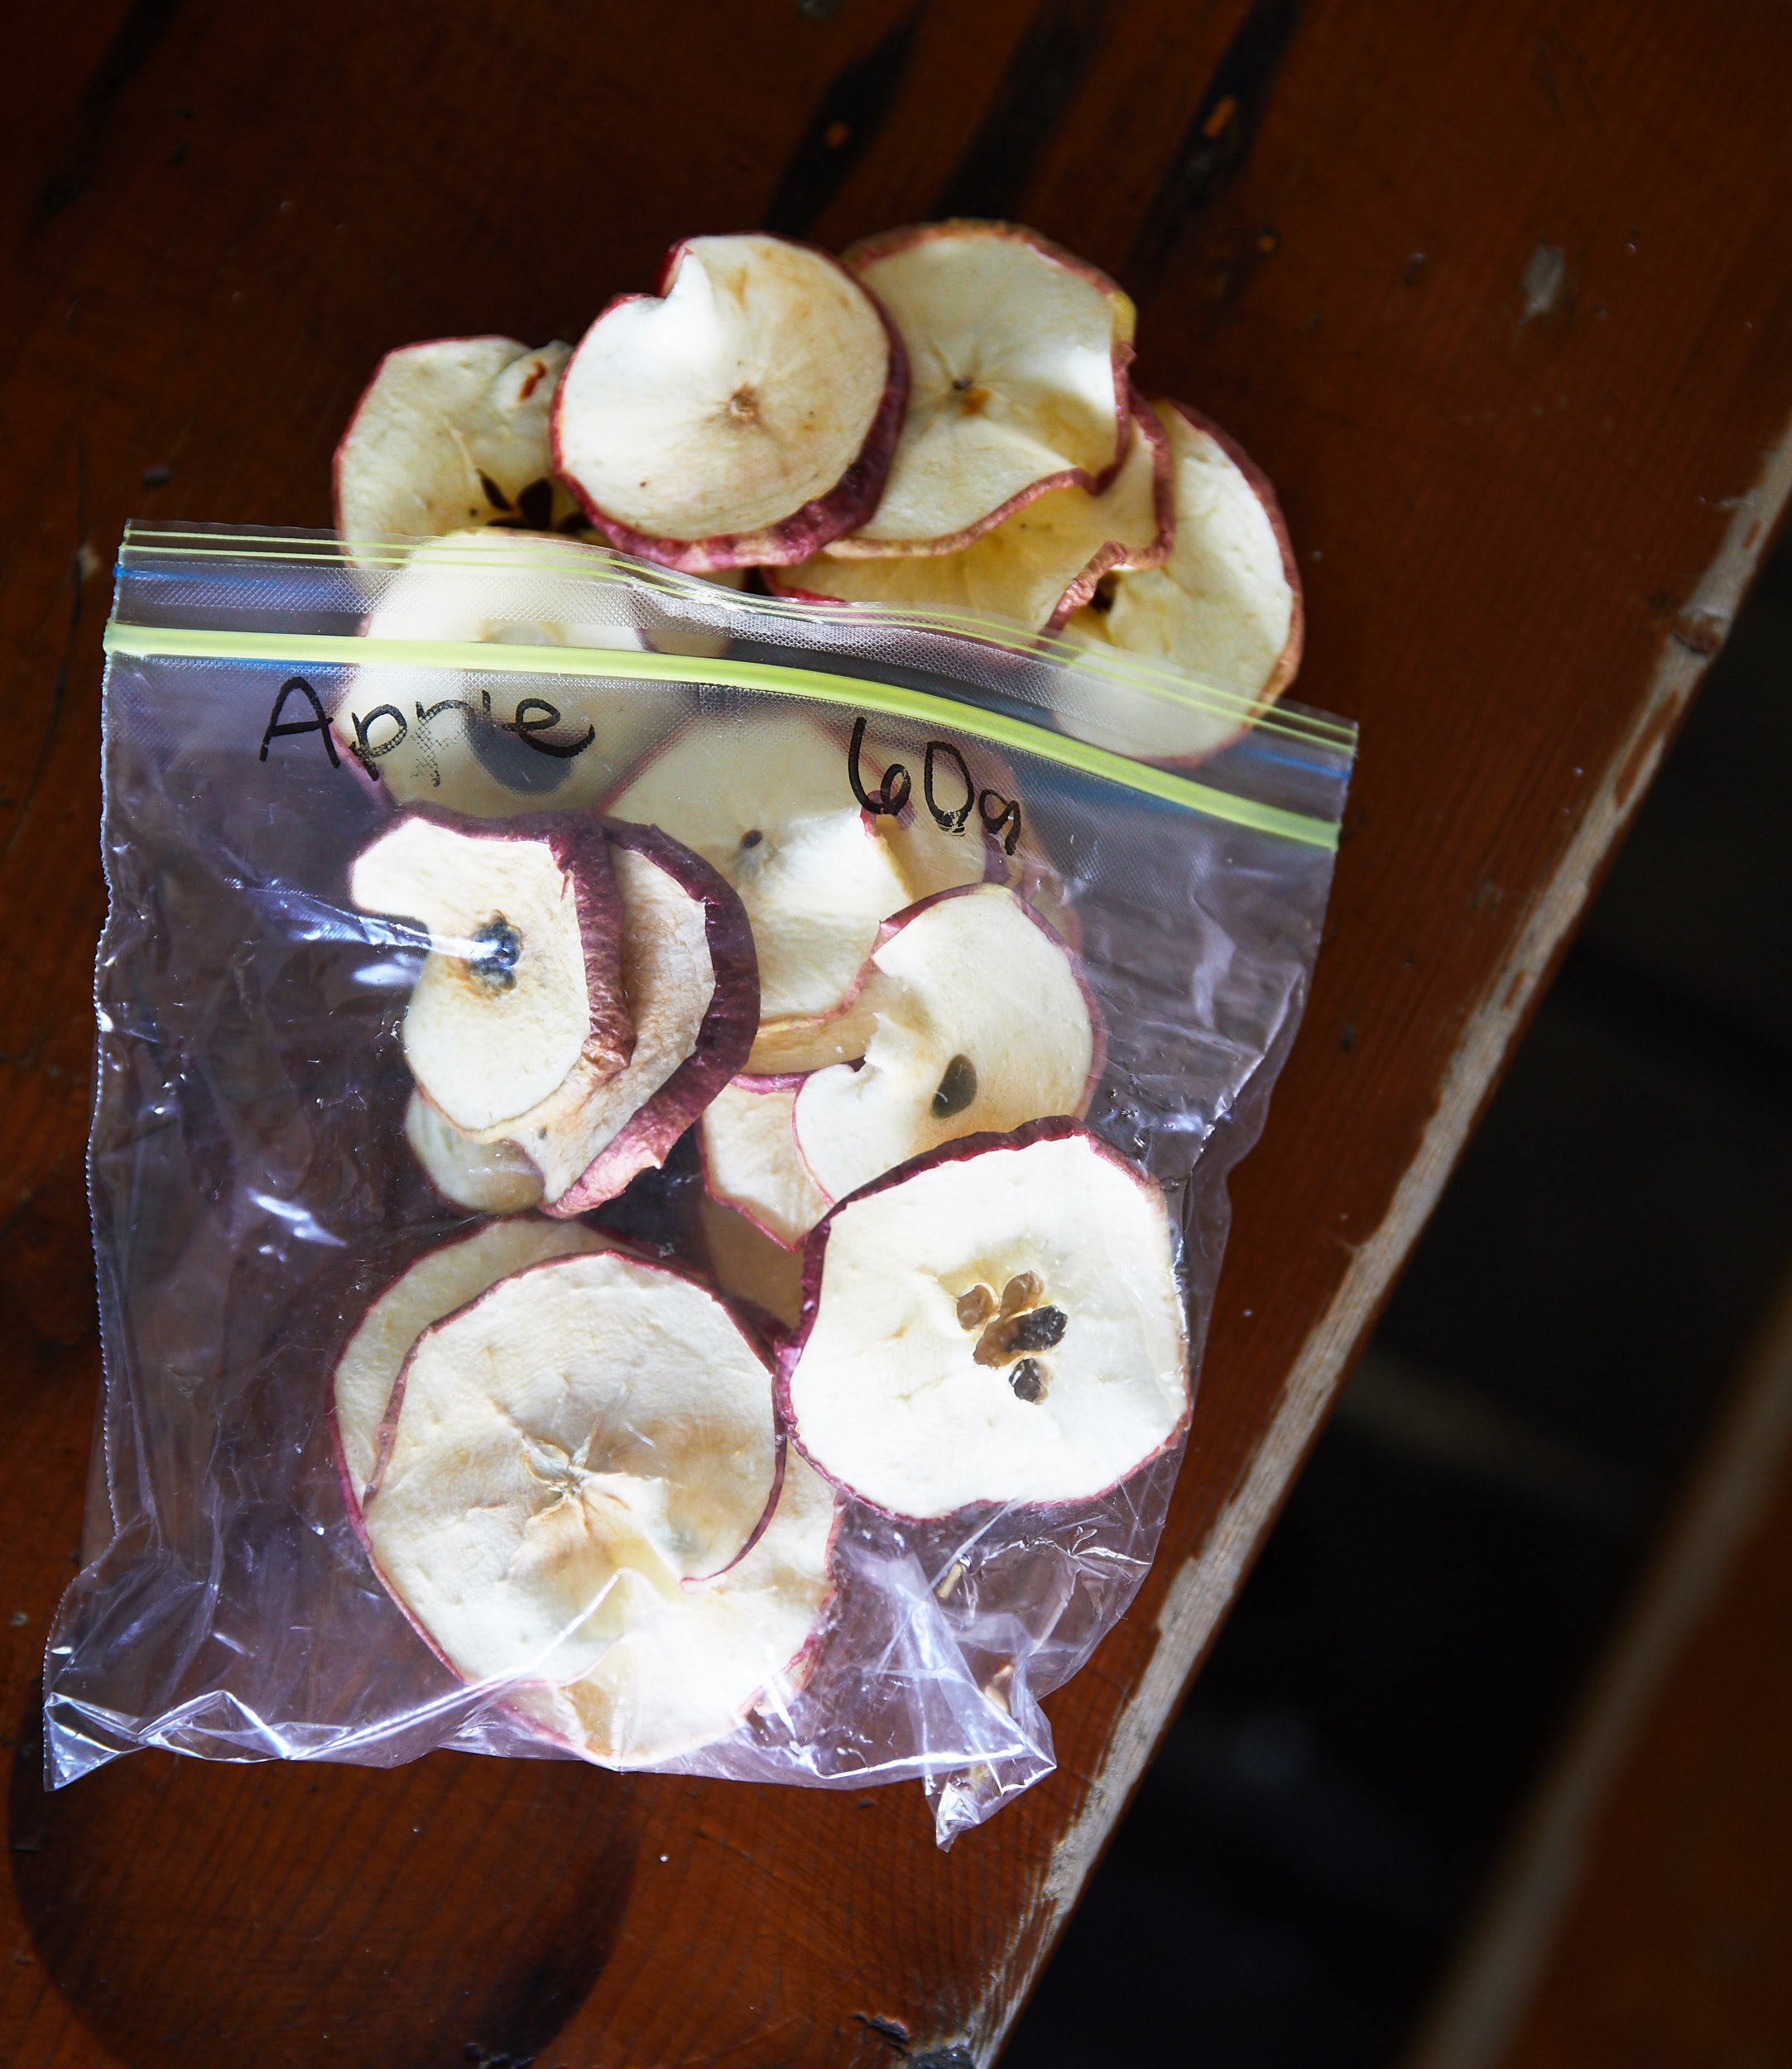 Paige dehydrated all of our meals for the entire trip, including these apples.